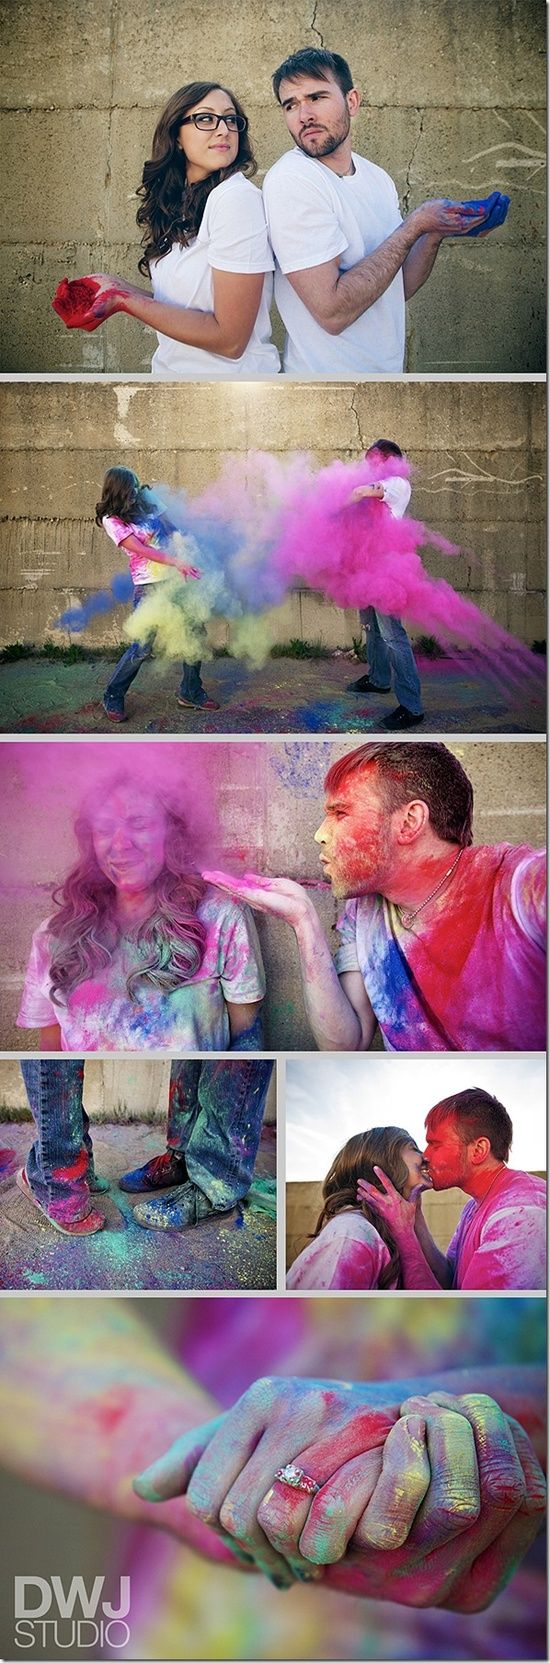 I love this idea. Could do this as a family shoot, best friend or engagement shoot